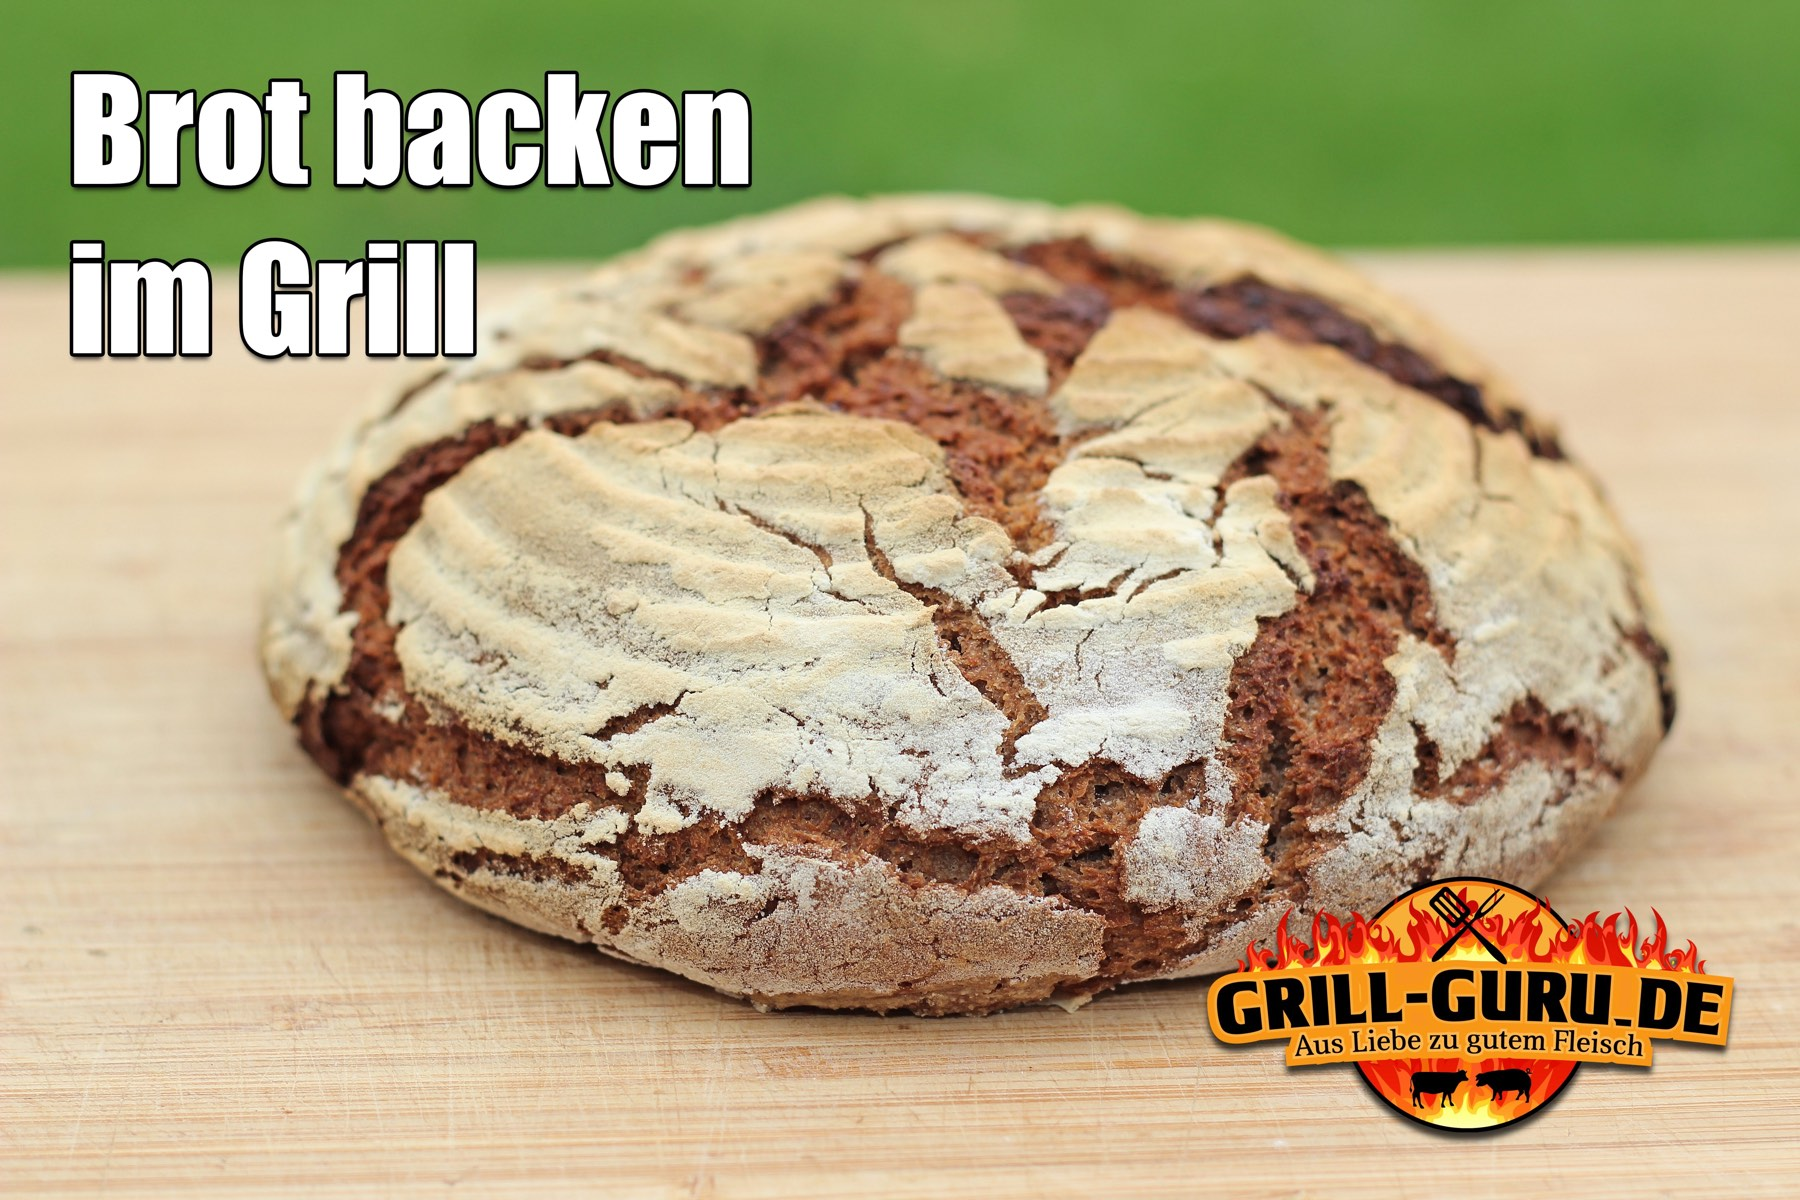 Weber Elektrogrill Pizza Backen : Brot im grill backen grill guru.de